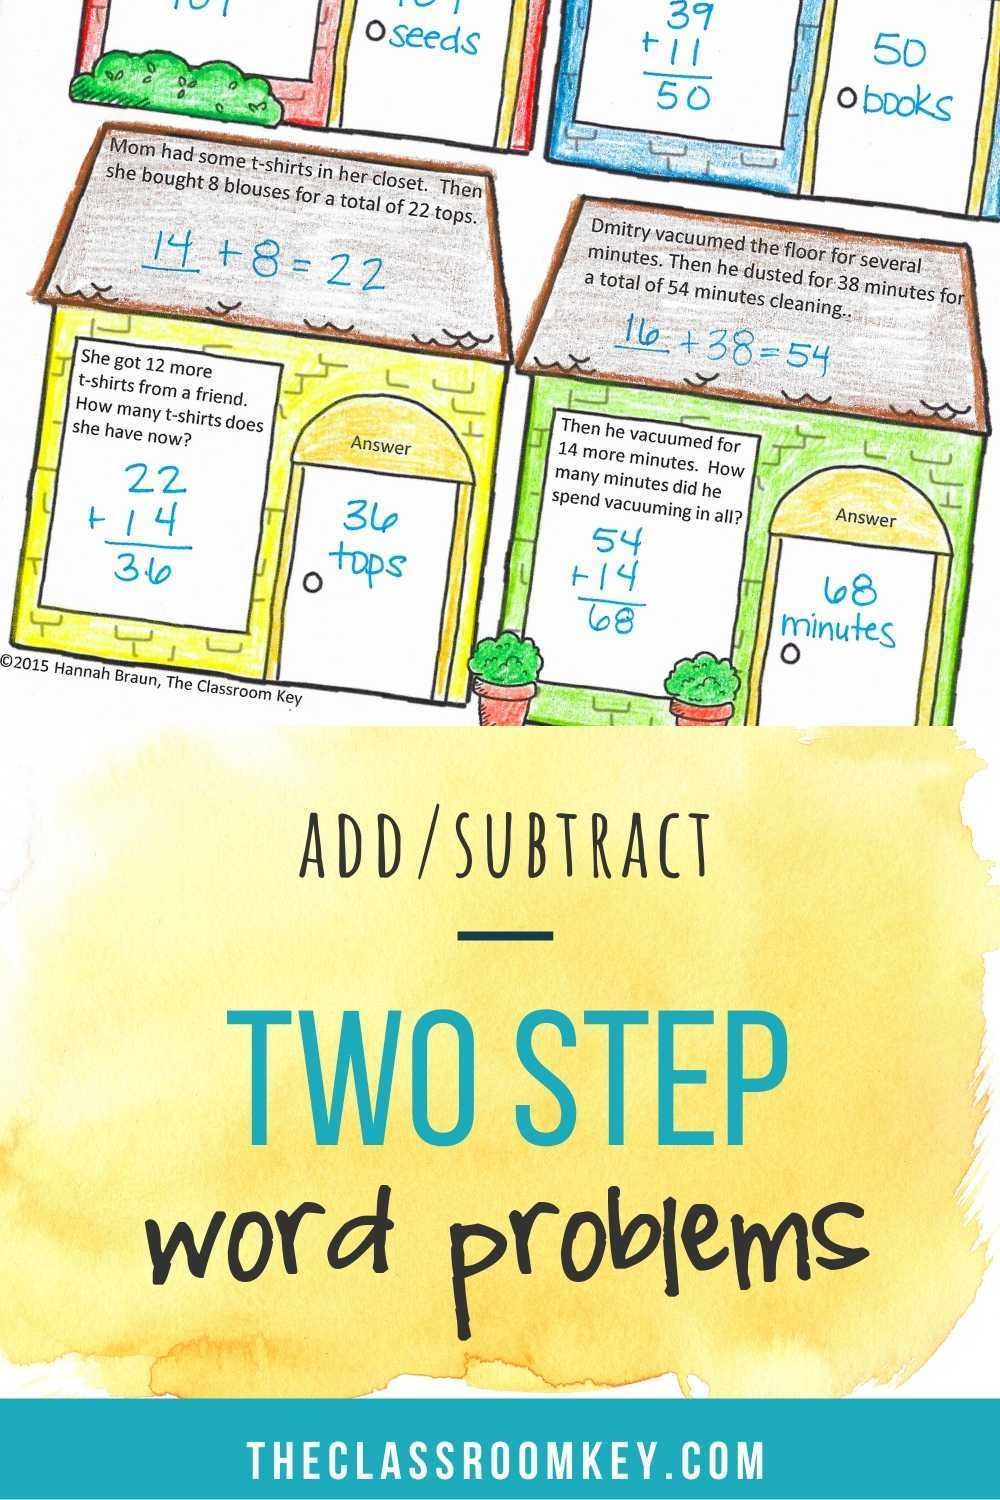 Two Step Word Problems Addition And Subtraction Word Problems Subtraction Word Problems Addition Word Problems Two step addition and subtraction word